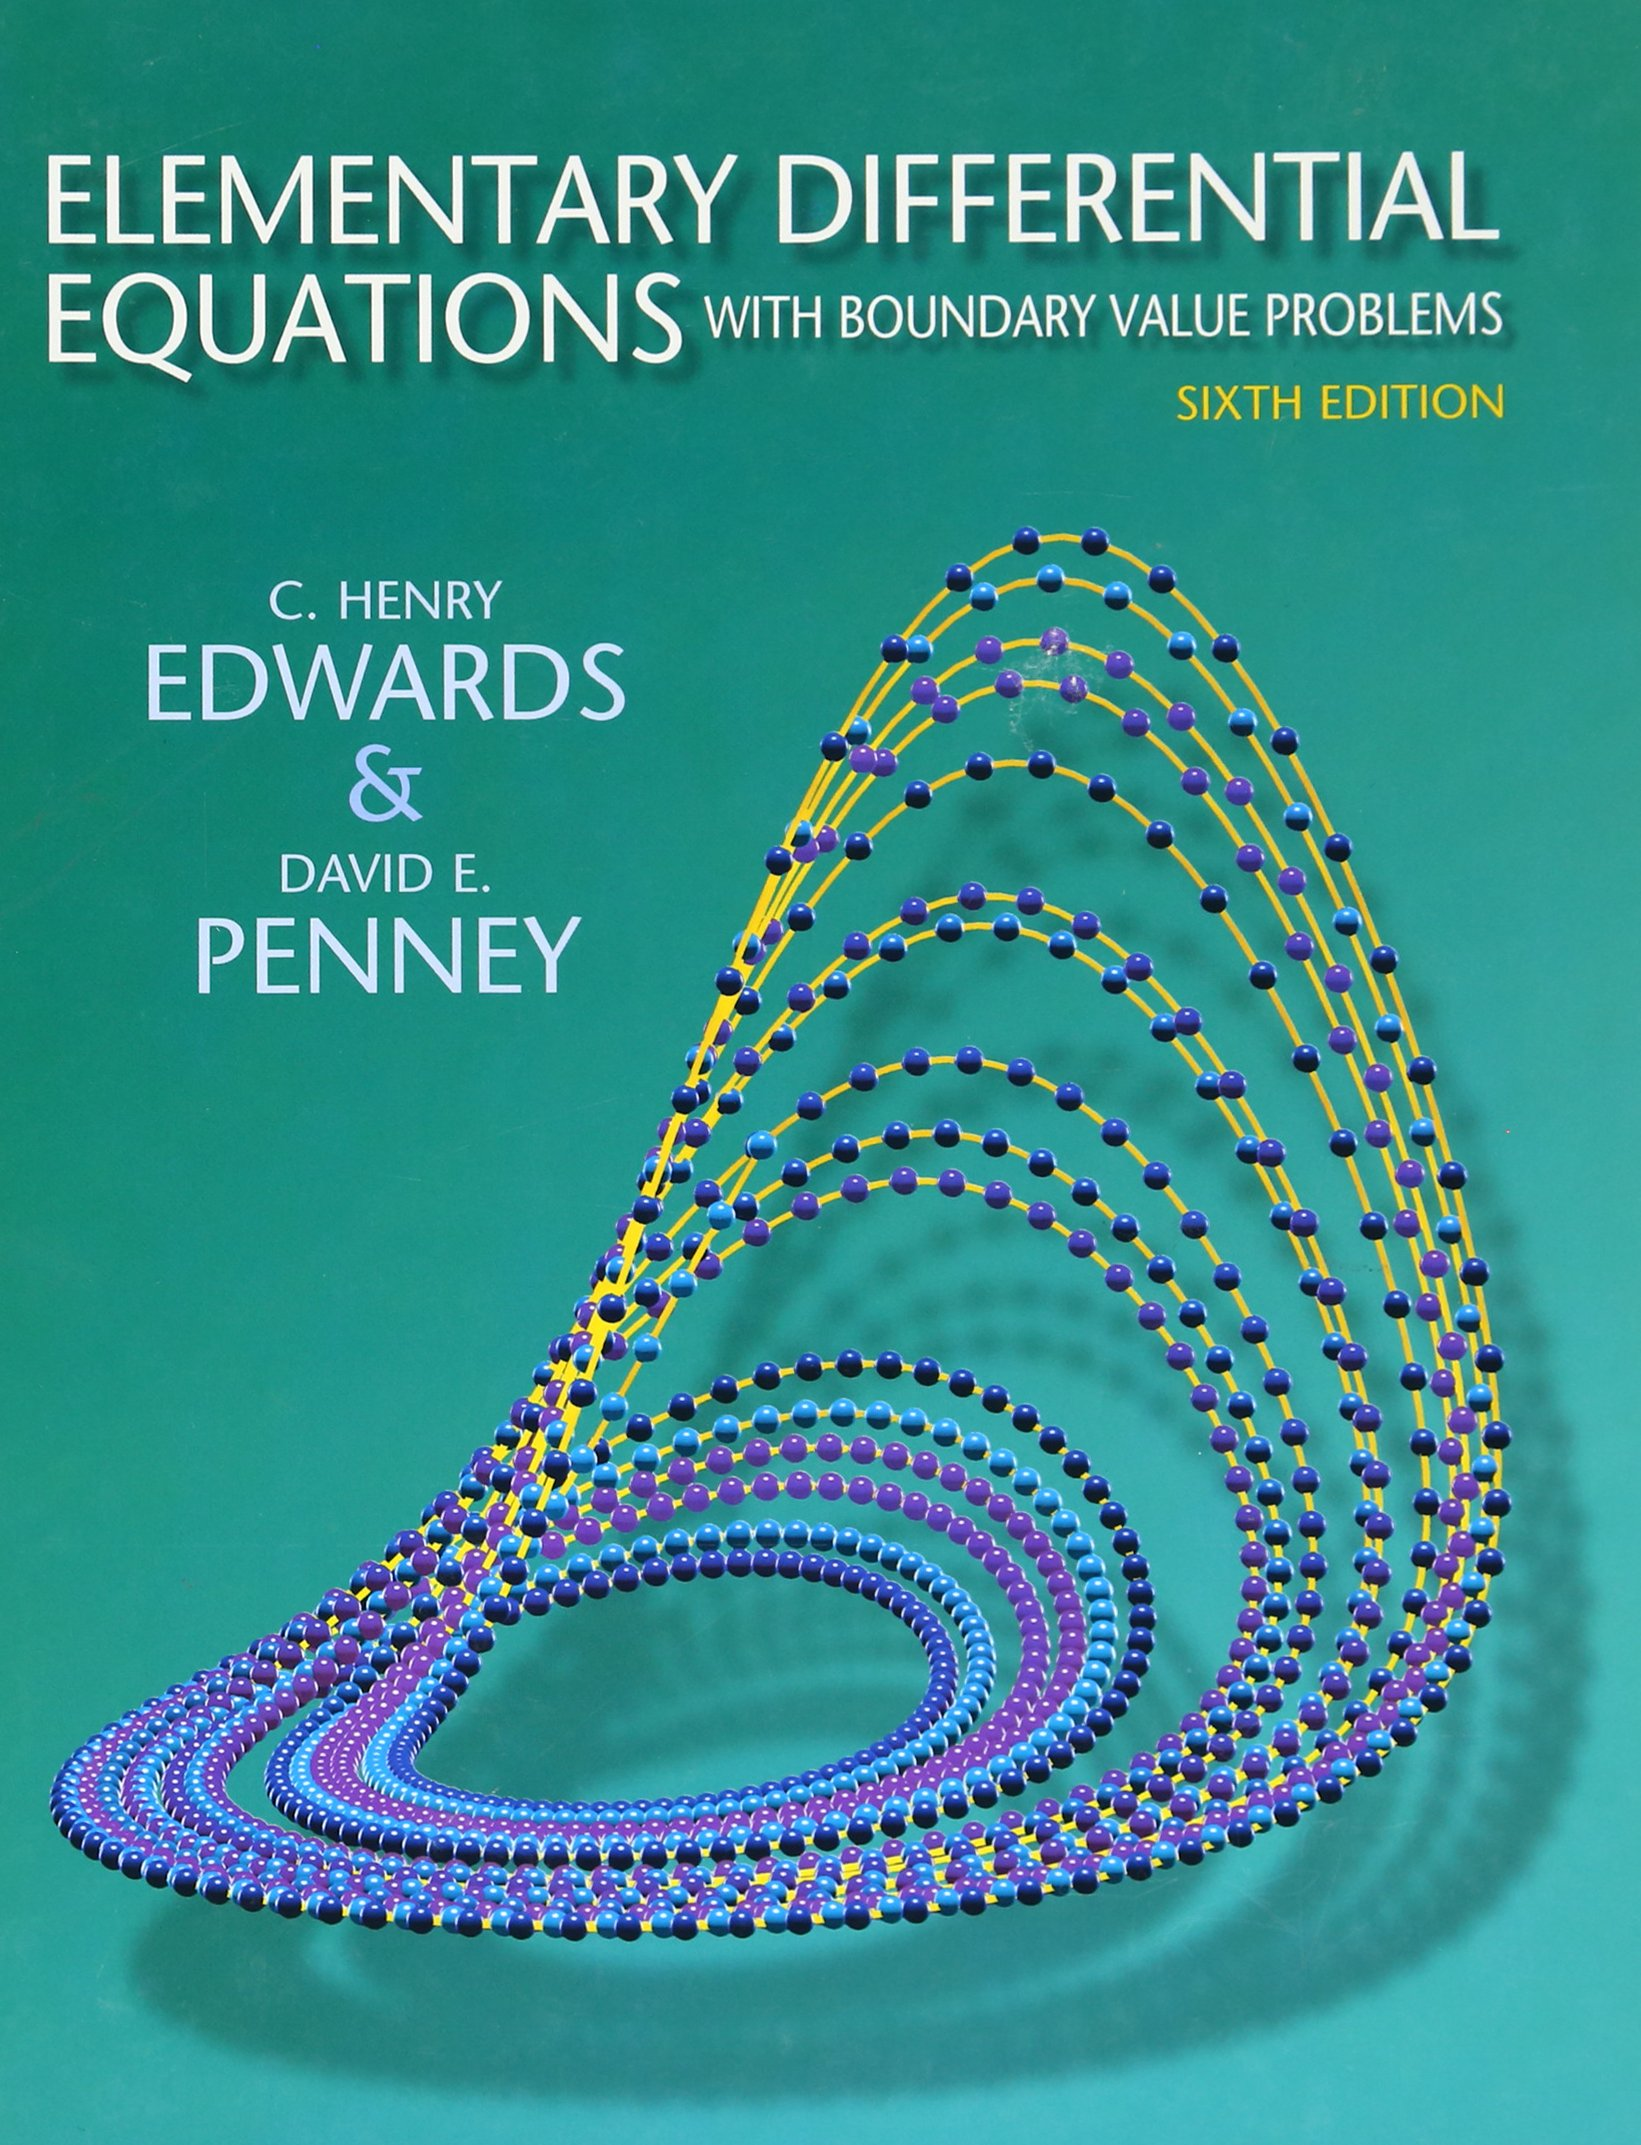 Elementary Differential Equations with Boundary Value Problems (6th  Edition): C. Henry Edwards, David E. Penney: 9780136006138: Books -  Amazon.ca